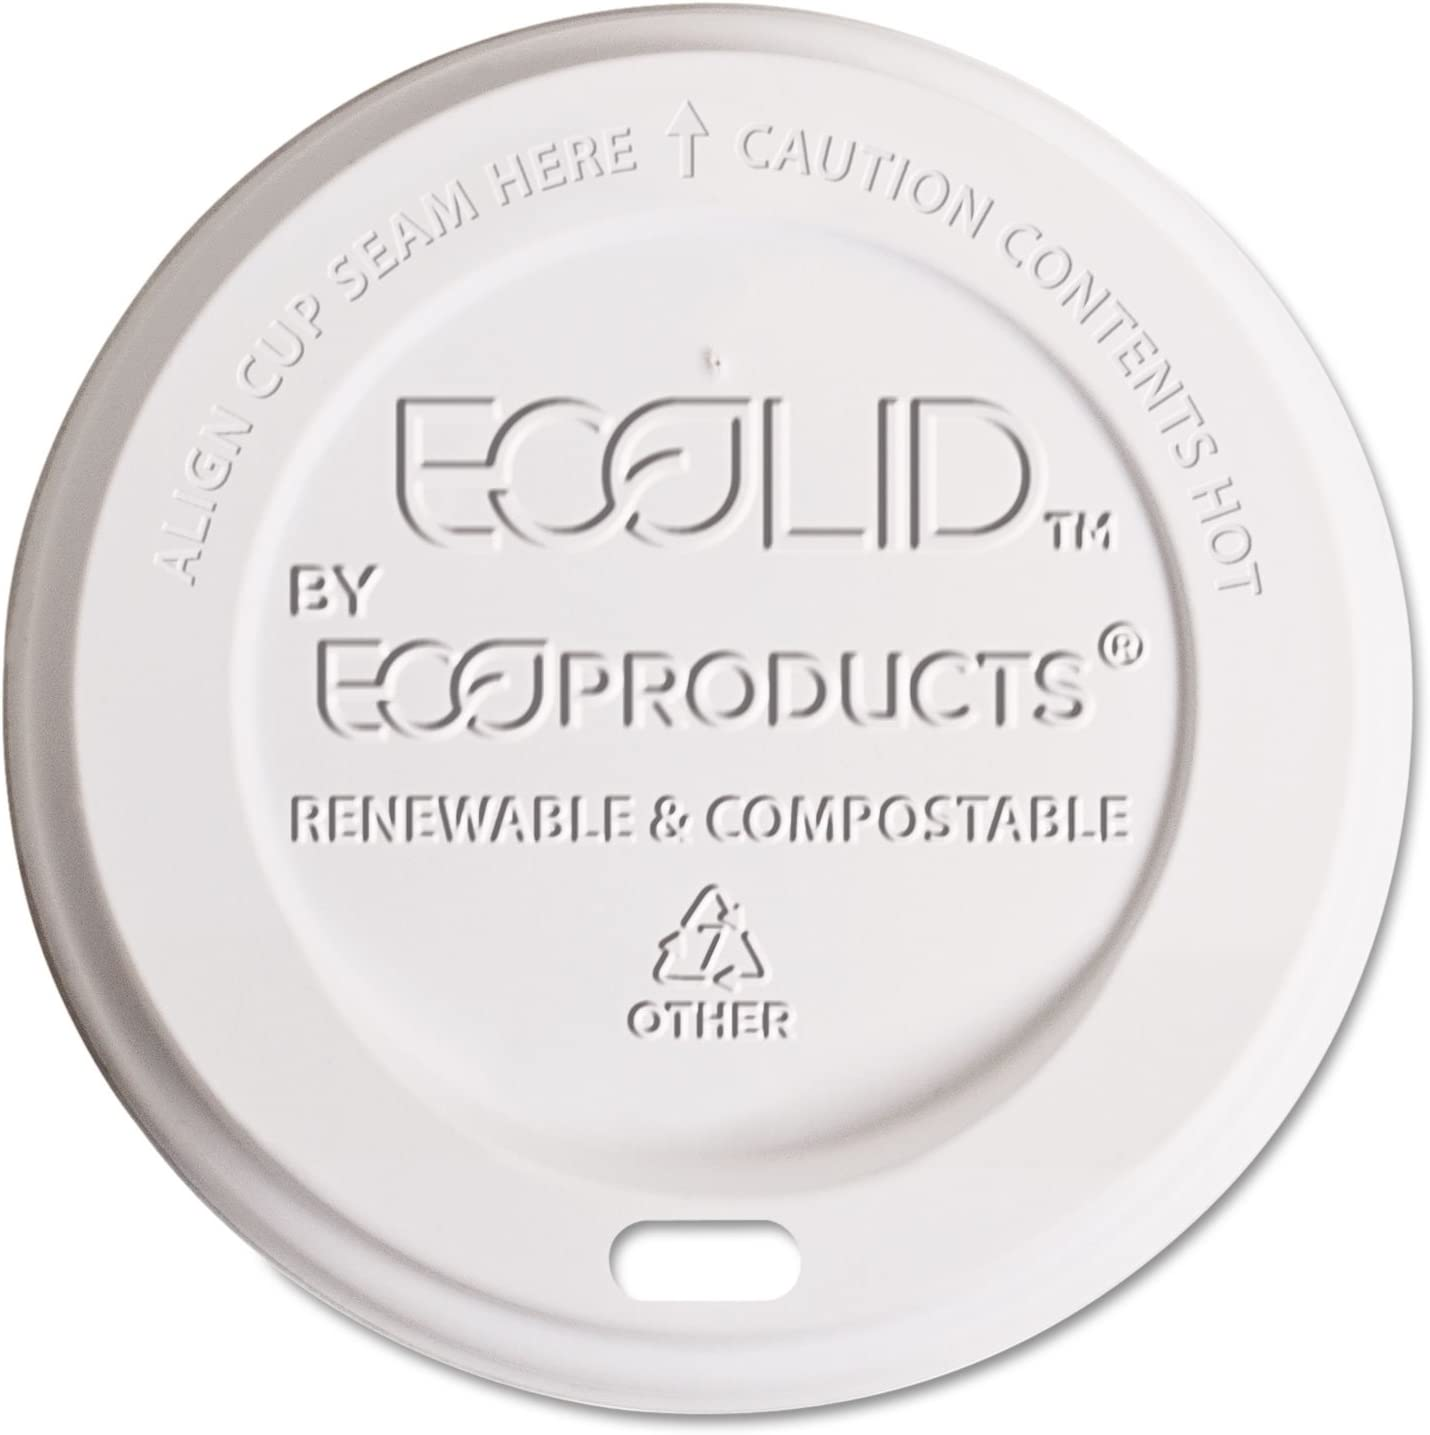 ECOEPECOLID8 - ECO-PRODUCTS INC. Hot Max 79% OFF Lid Max 85% OFF Cup